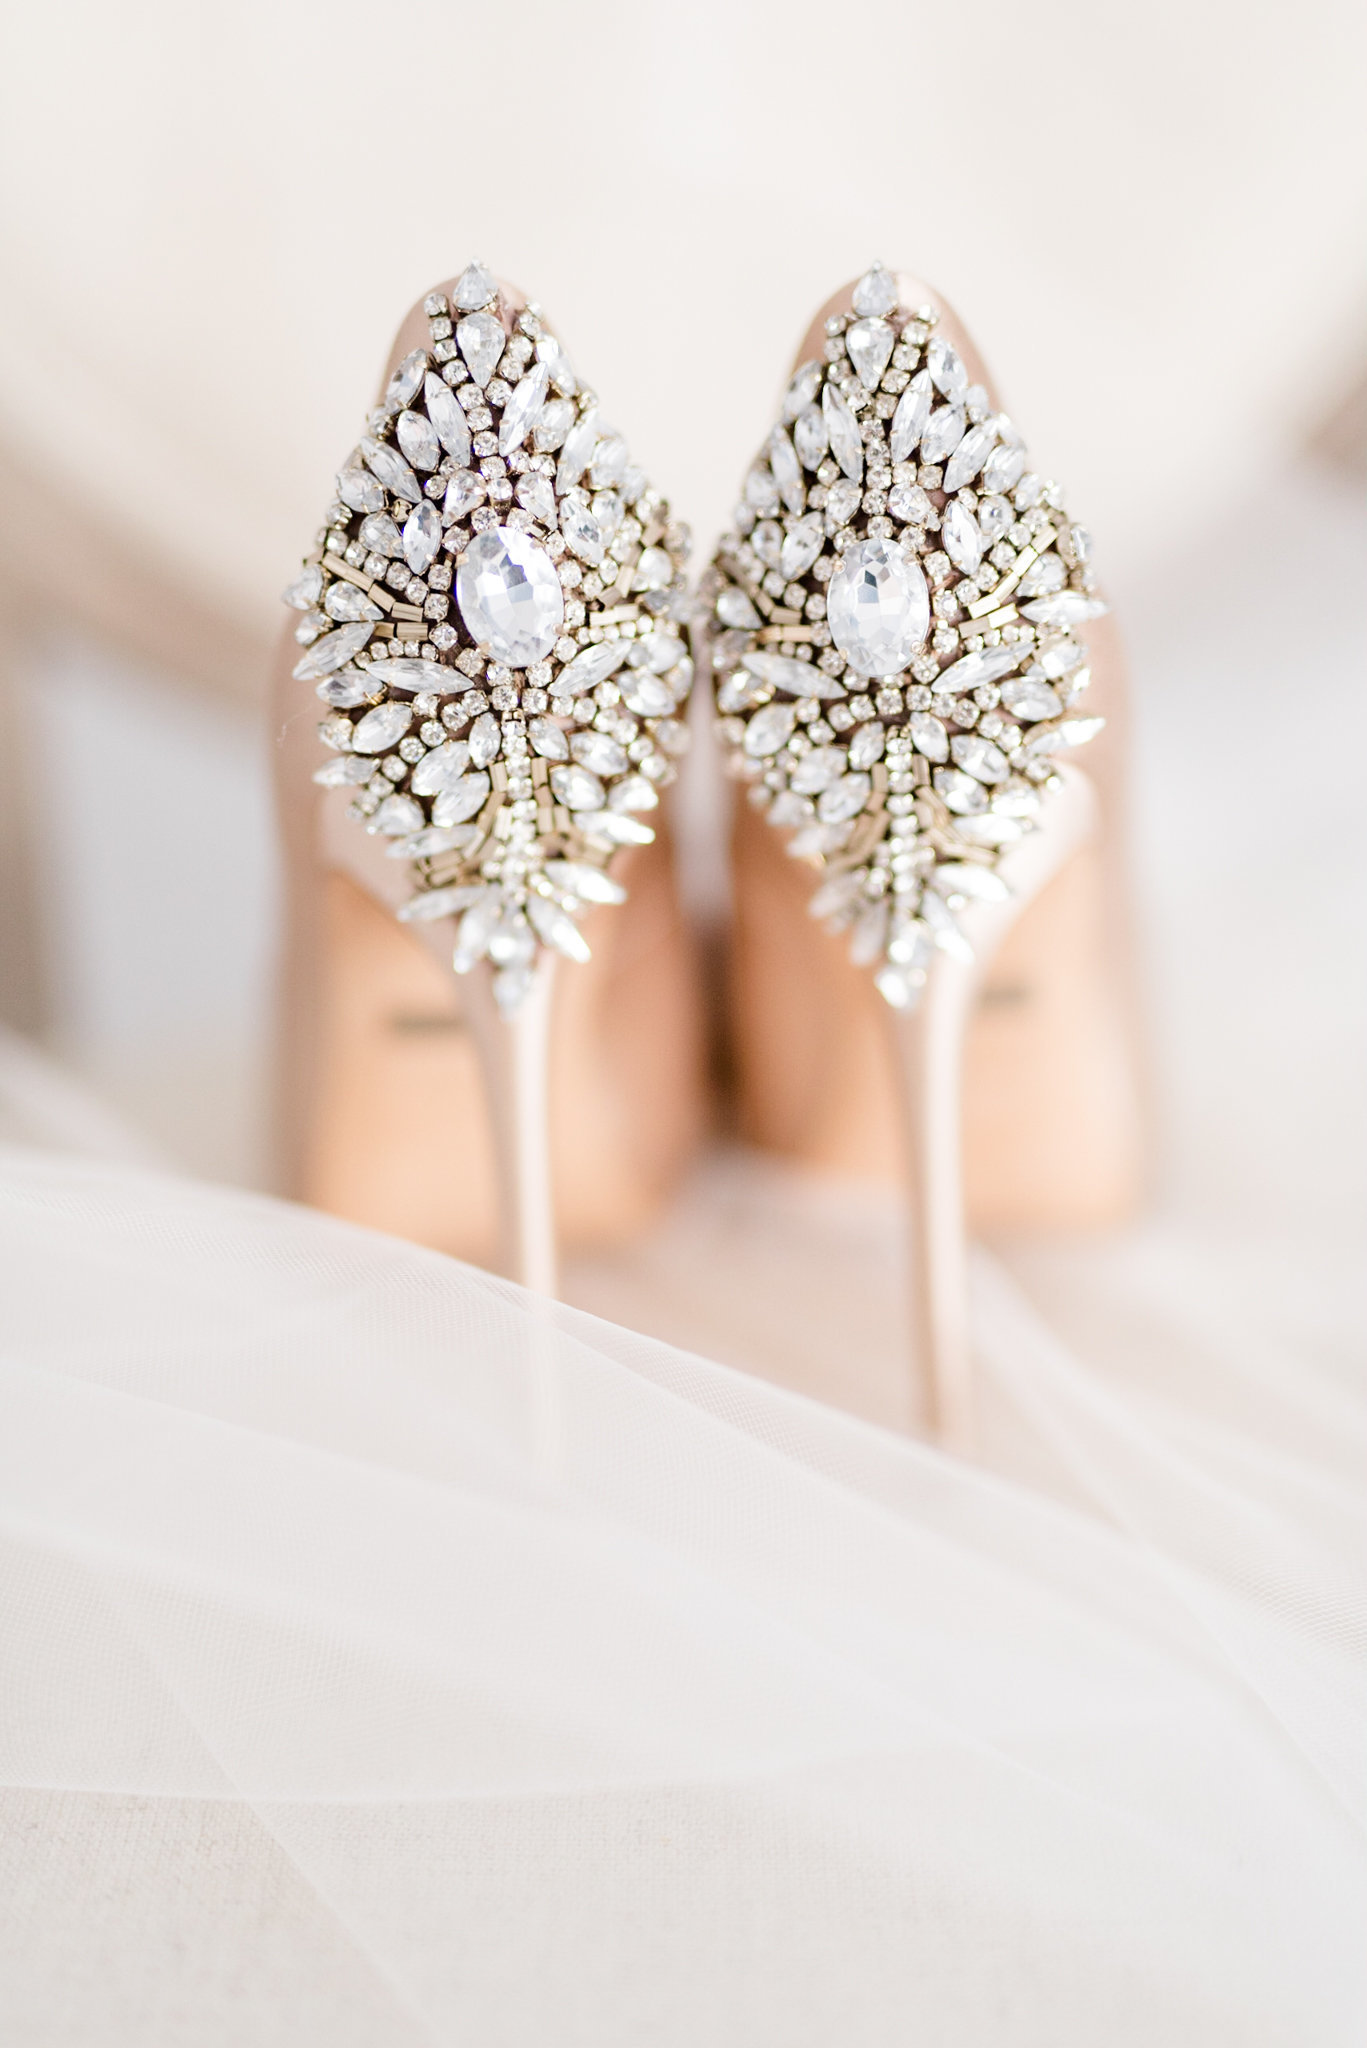 Jeweled bridal shoes sit on chair in Tampa.